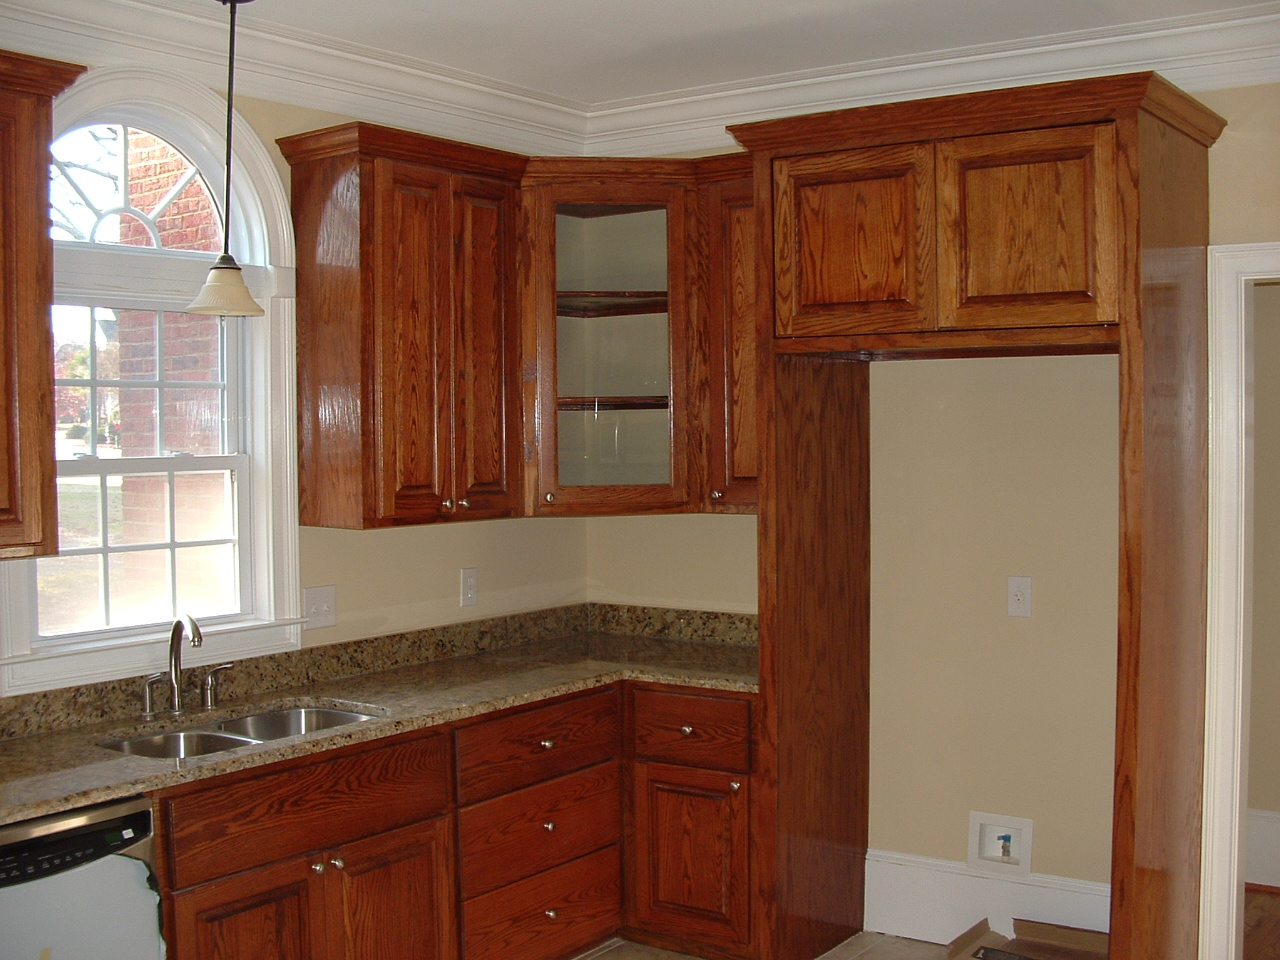 Kitchen cabinet door storage photo - 1